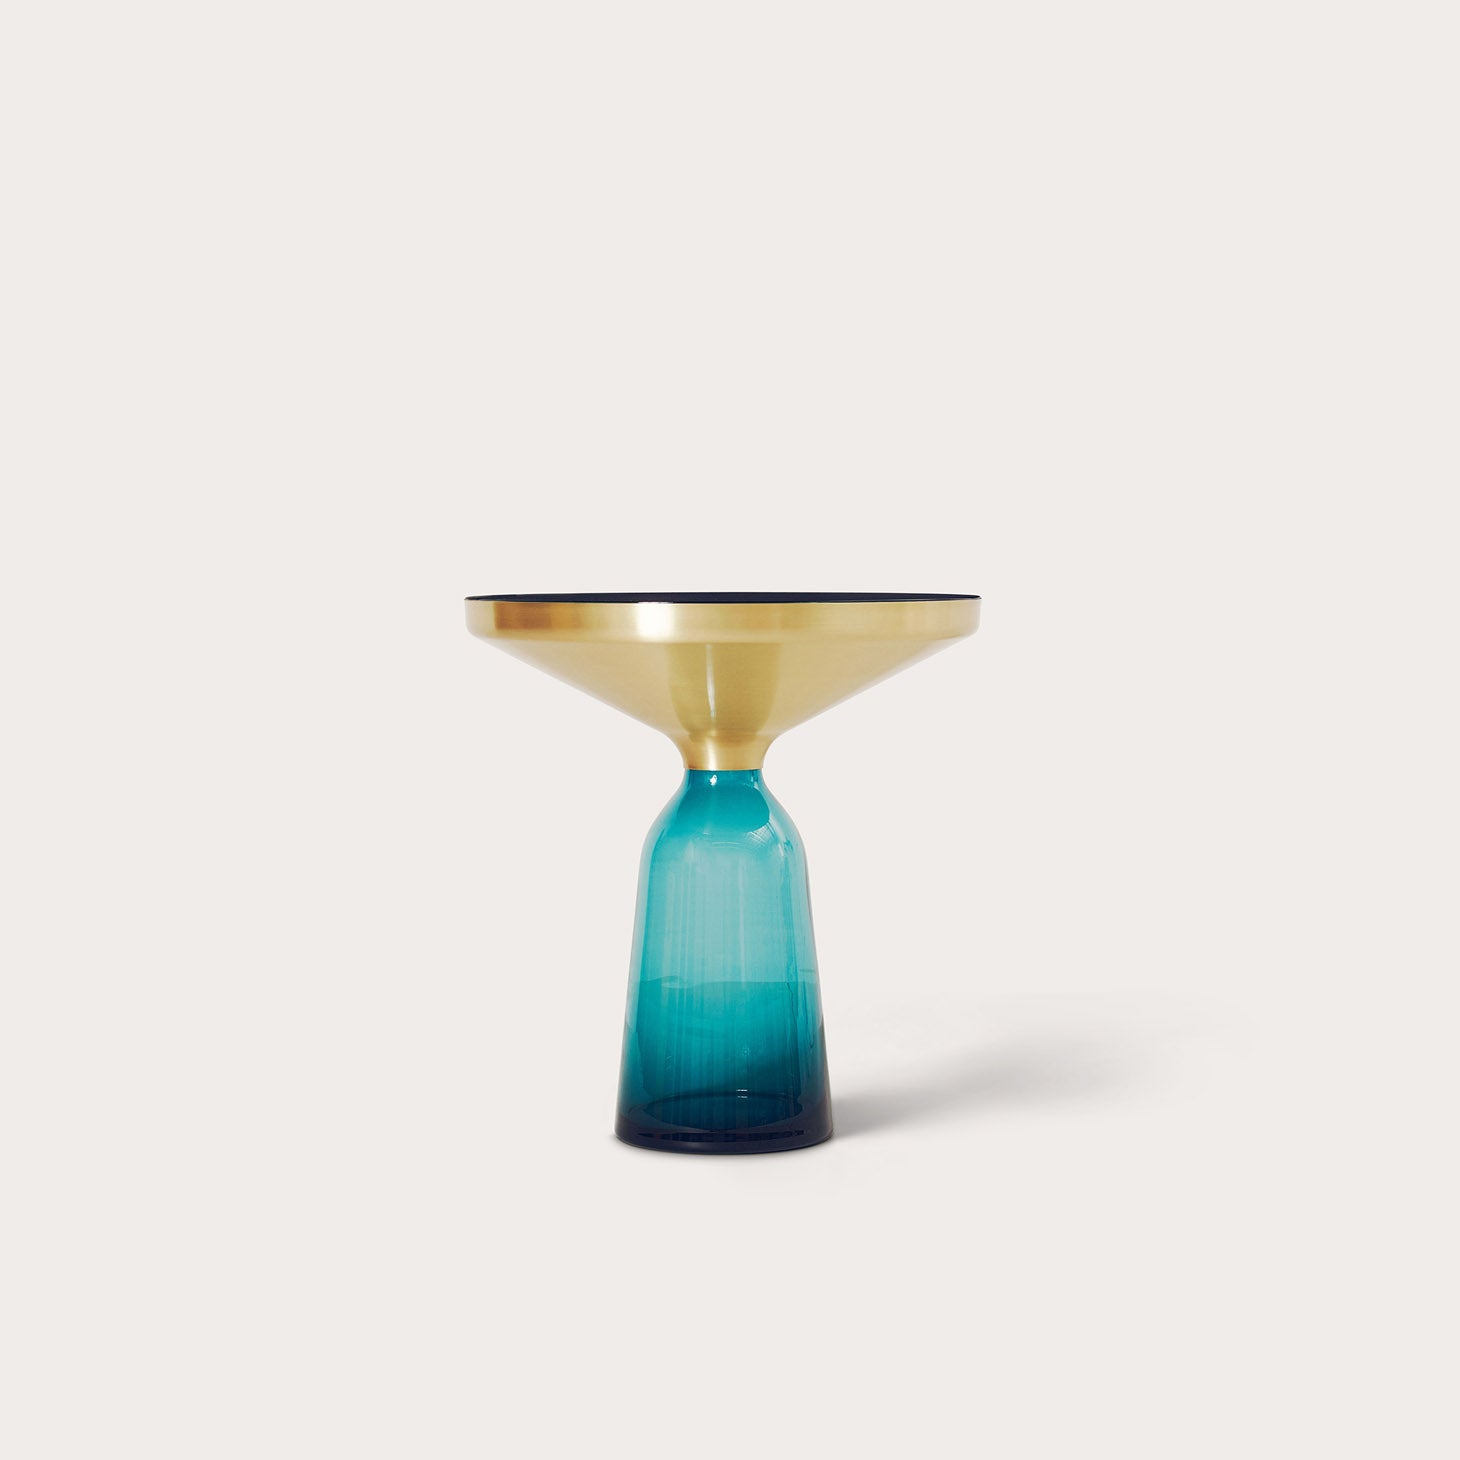 Bell Table Tables Sebastian Herkner Designer Furniture Sku: 001-230-10181